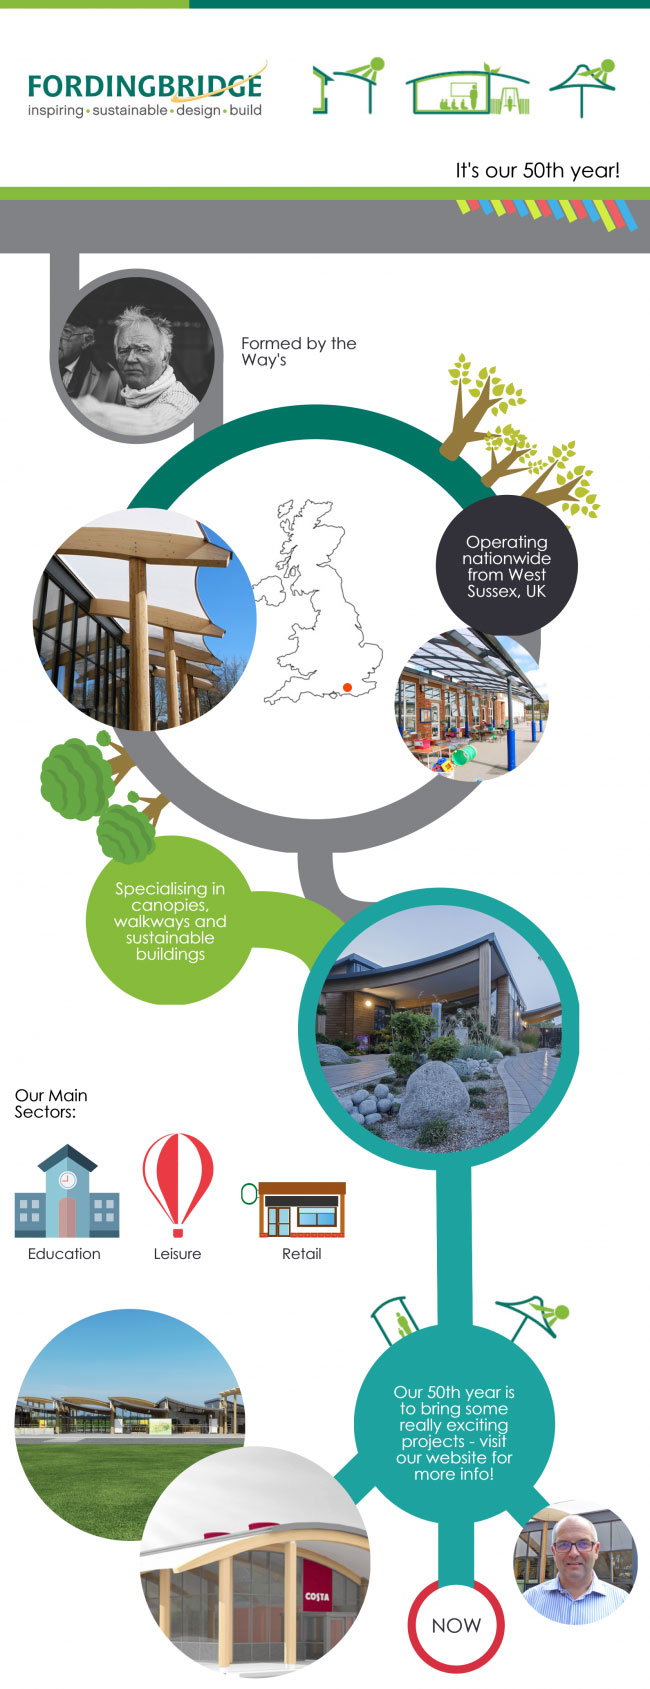 Fordingbridge's 50th Year infographic